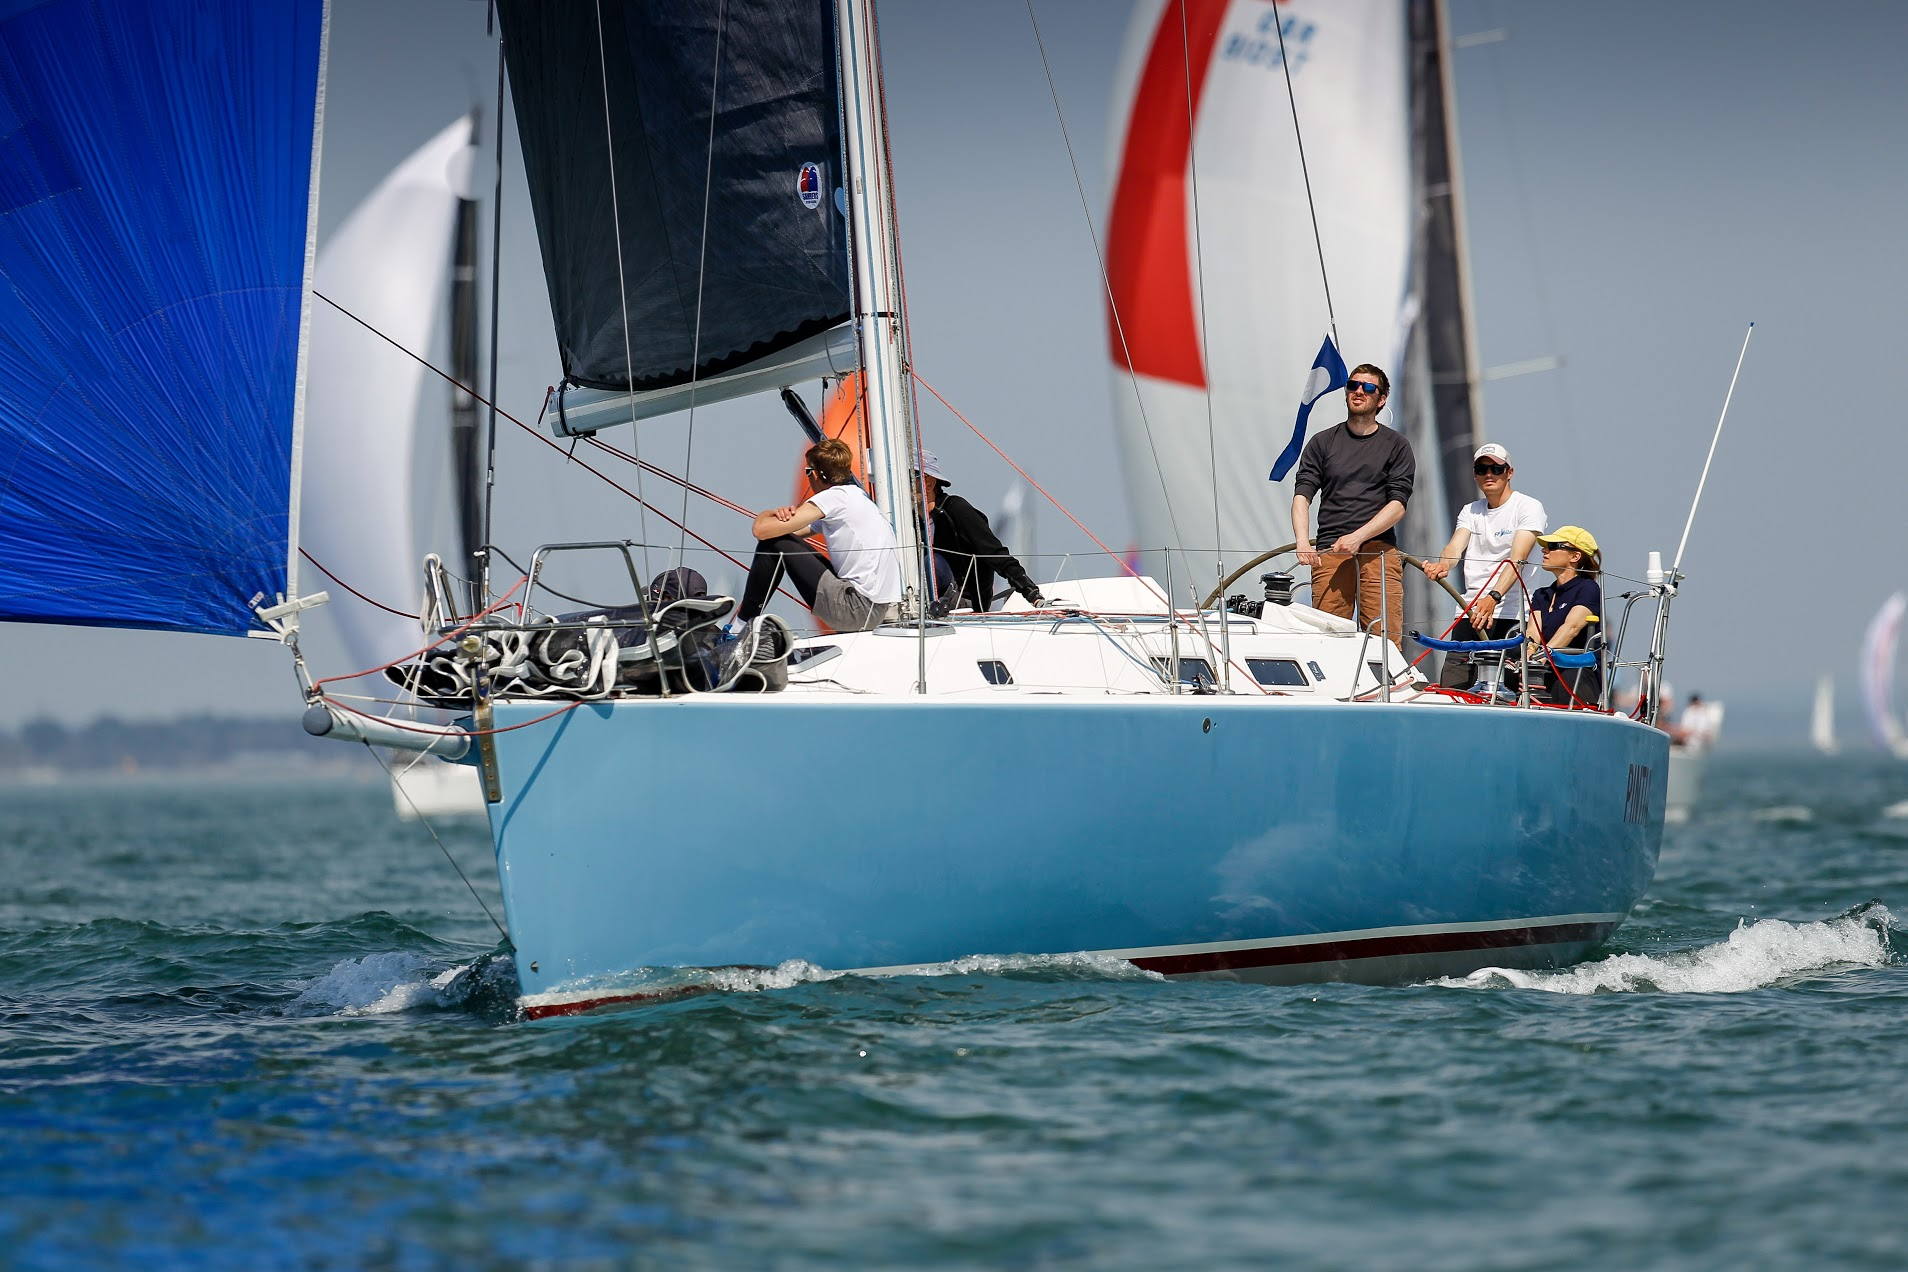 Corinne Migraine co-owns the successful J/133 Pintia with her father Gilles Fournier